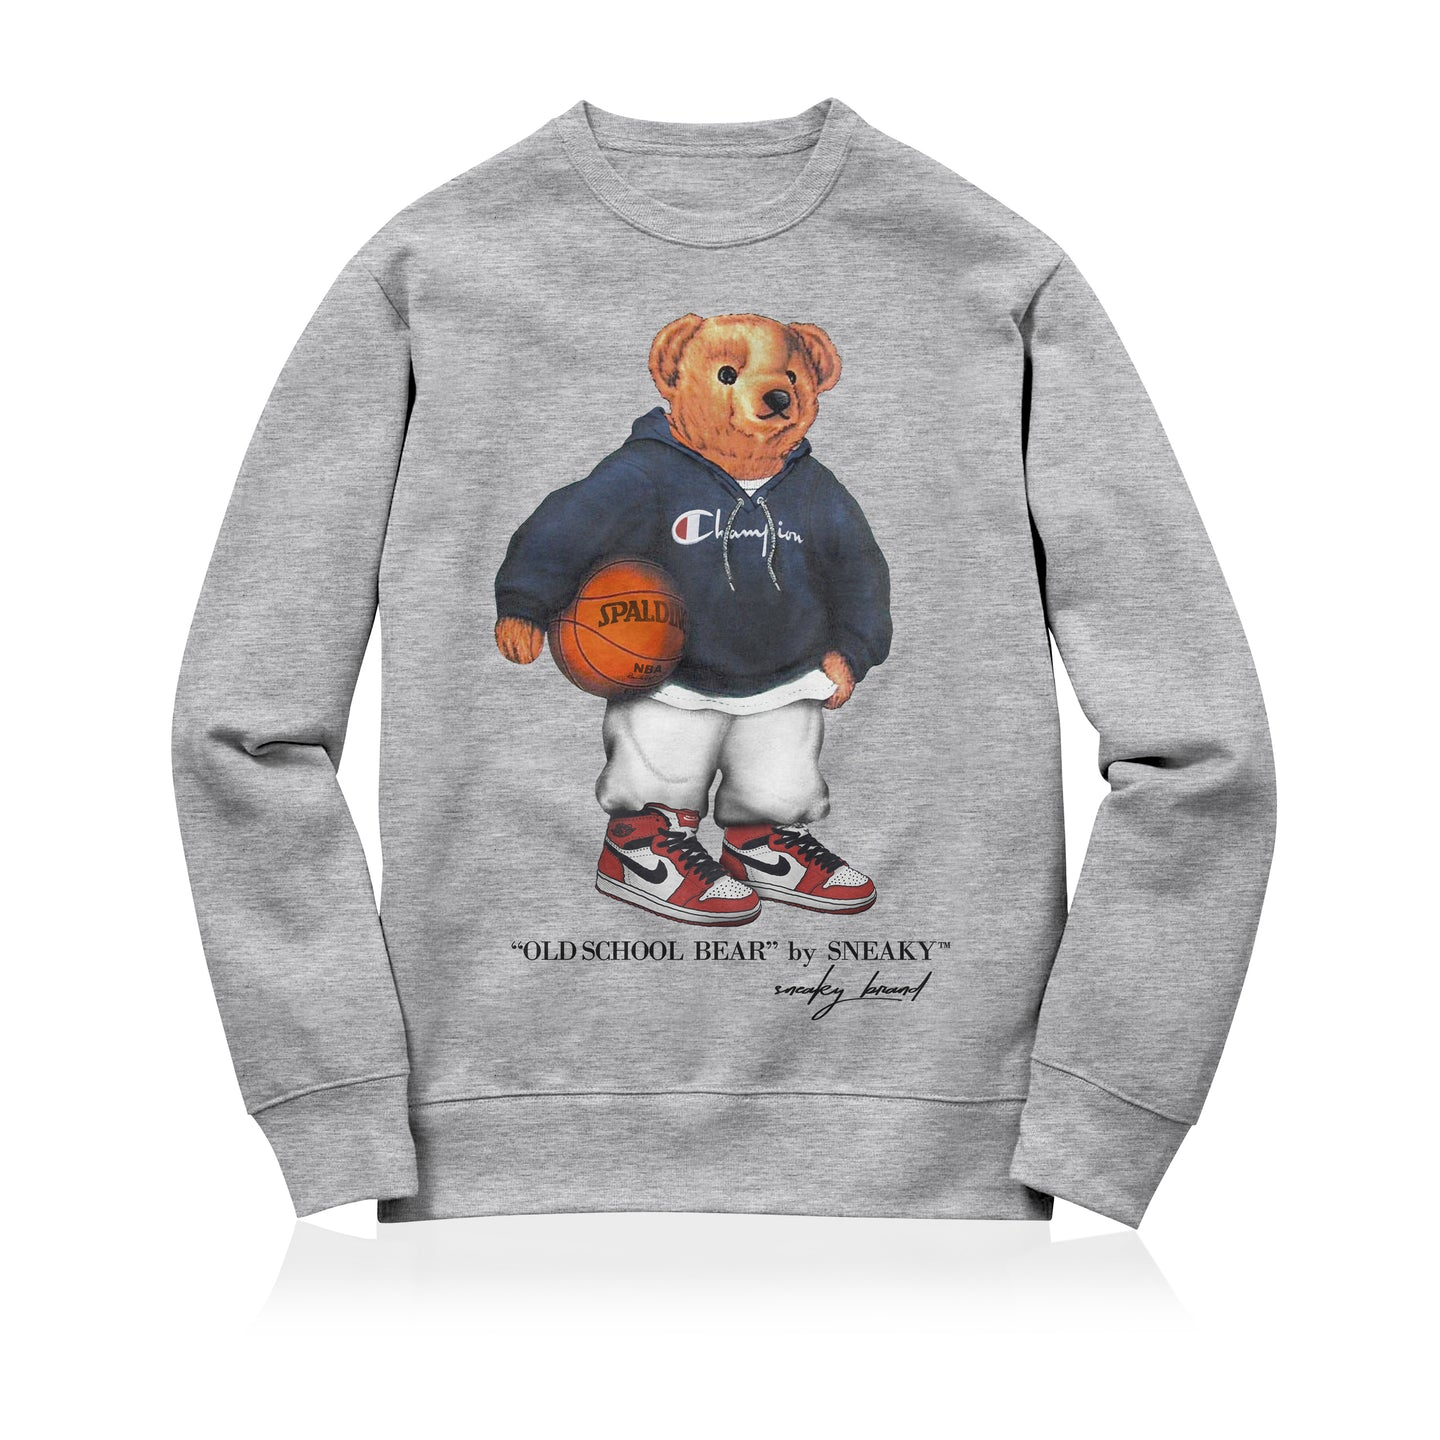 Sneaky Old School Bear Unisex Adult Sweatshirt Grey